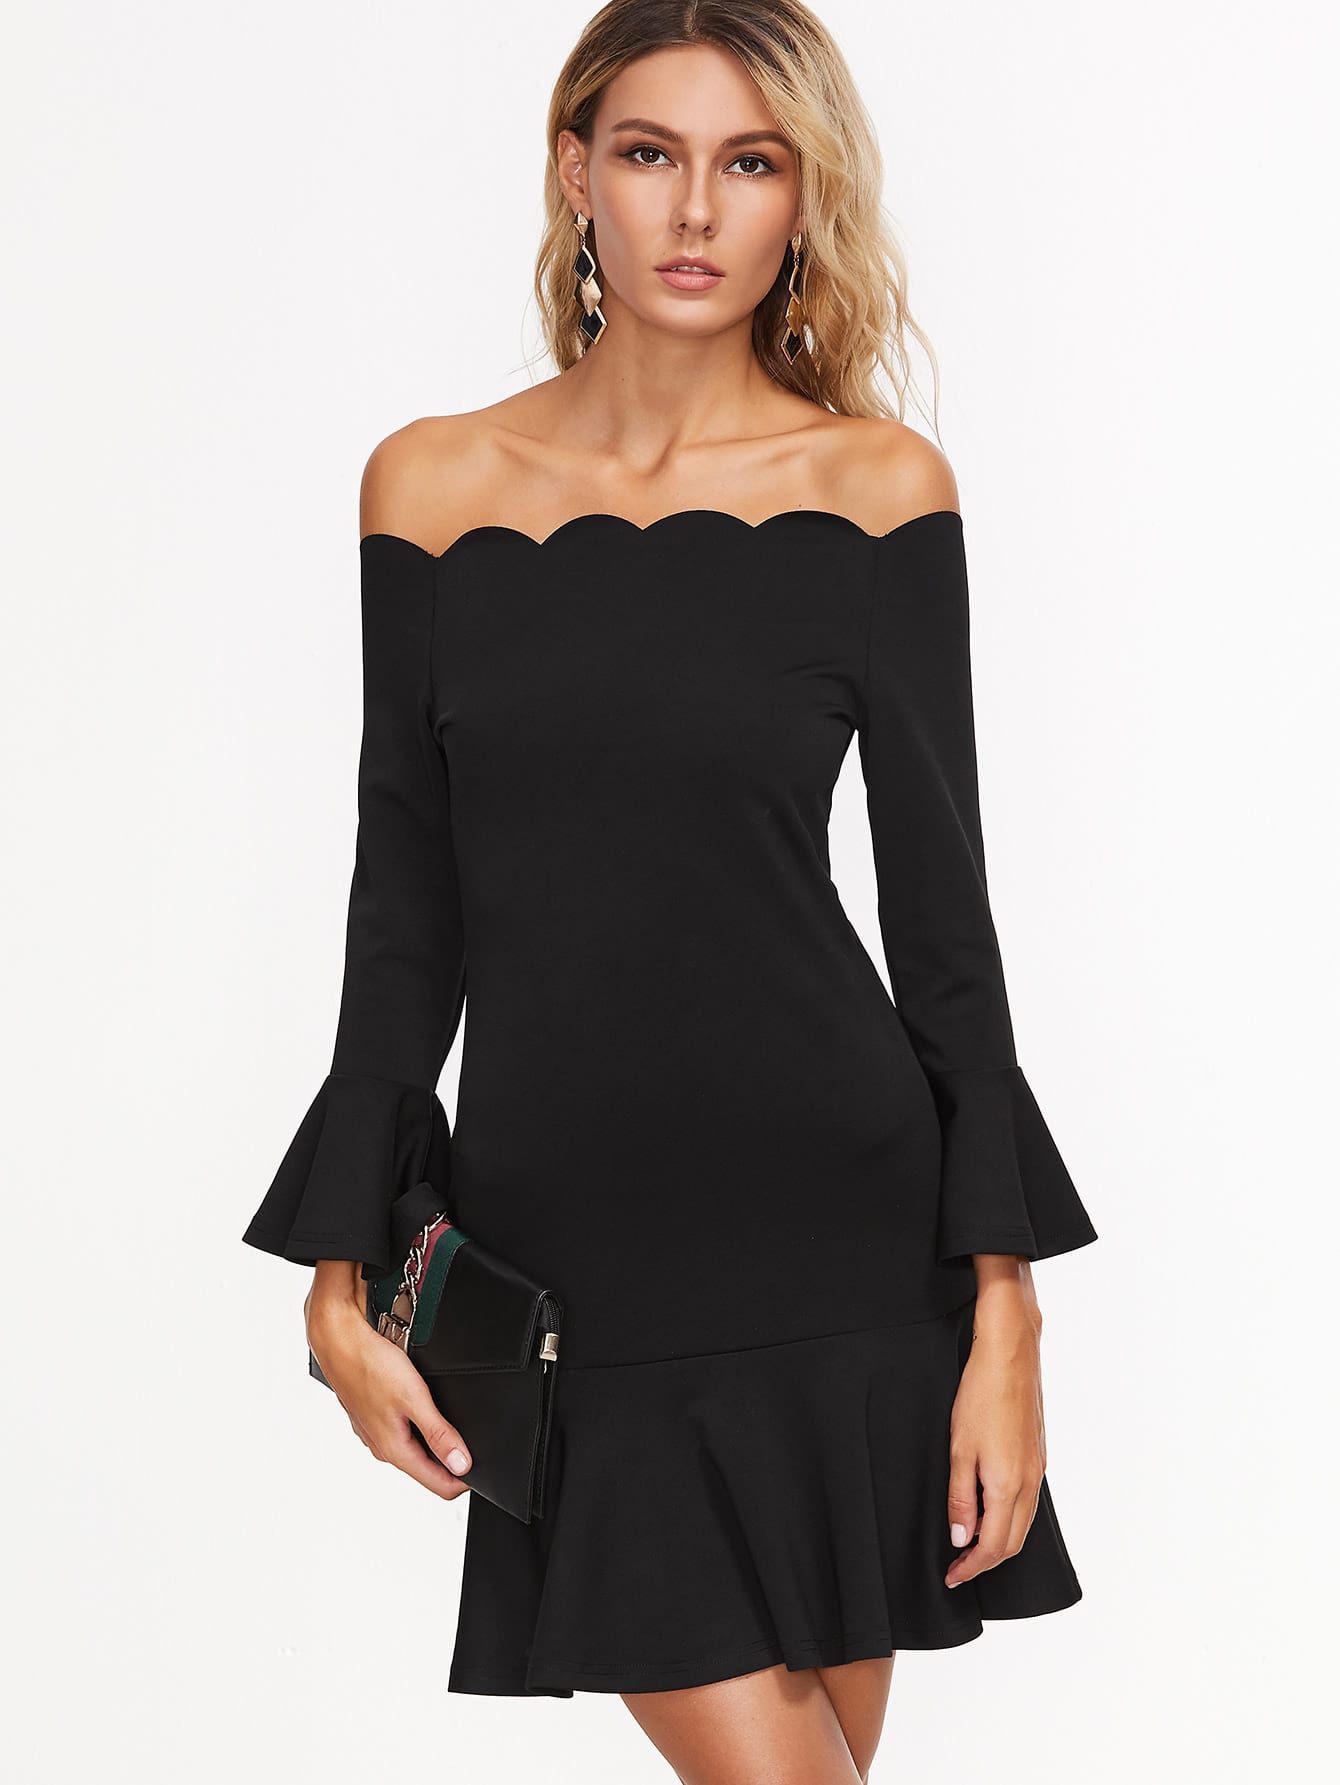 Scallop Off Shoulder Frill Dress pearl detail frill off shoulder dress